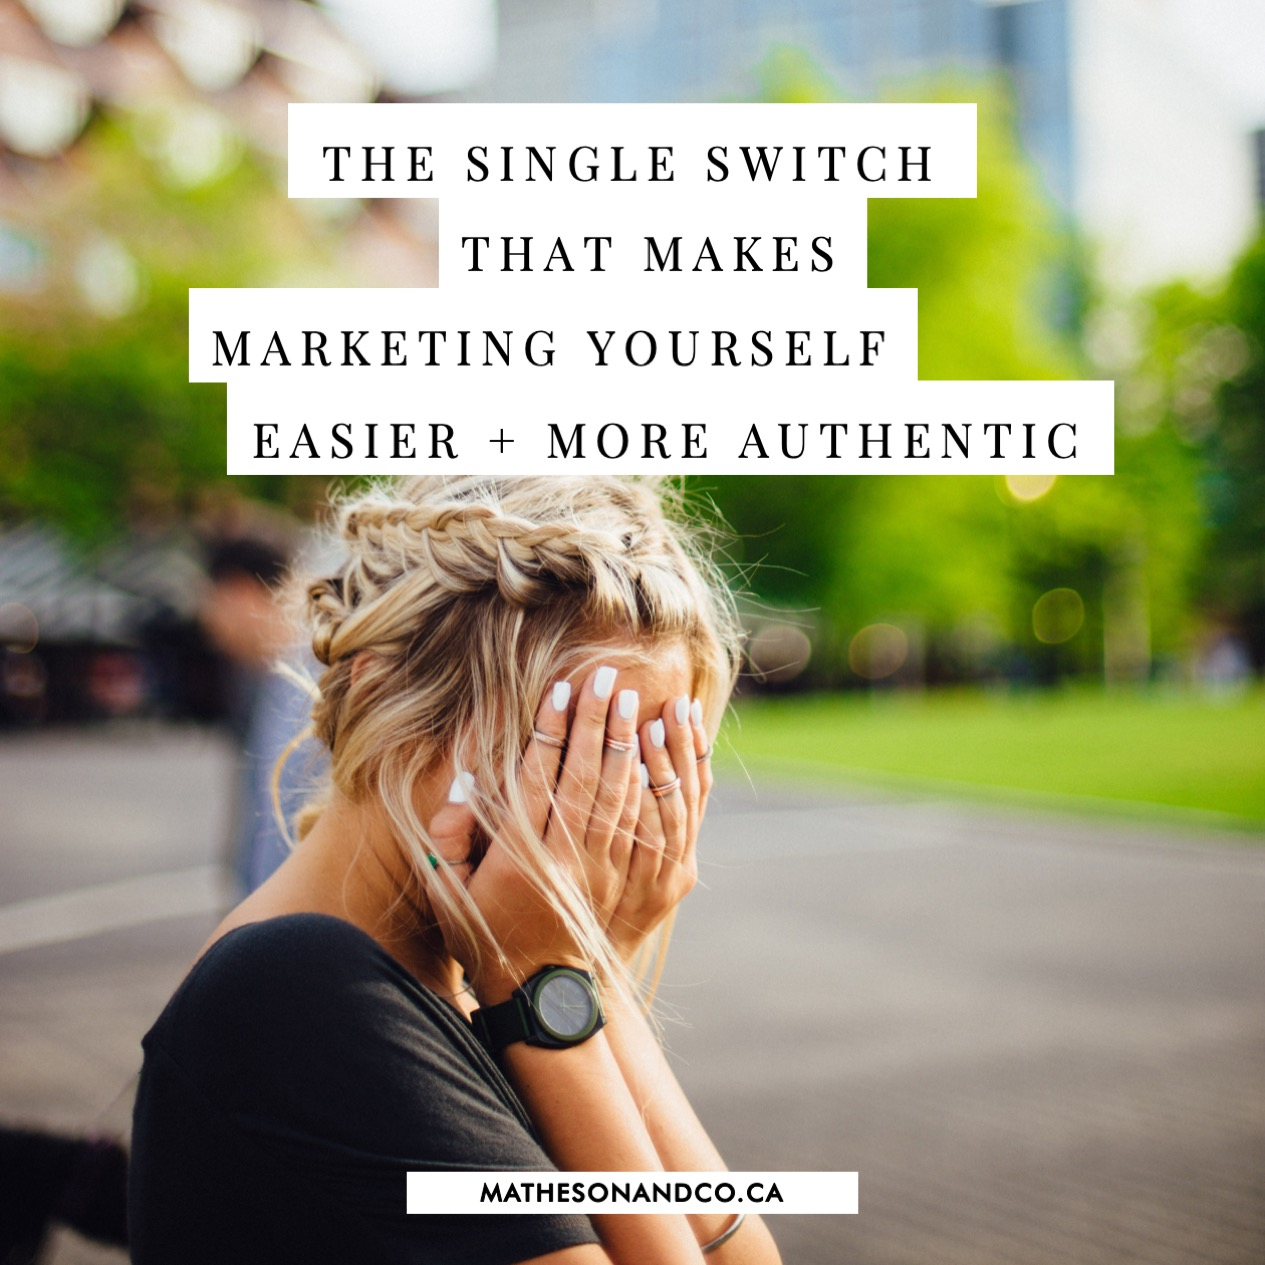 The single switch that makes marketing yourself easier and more authentic